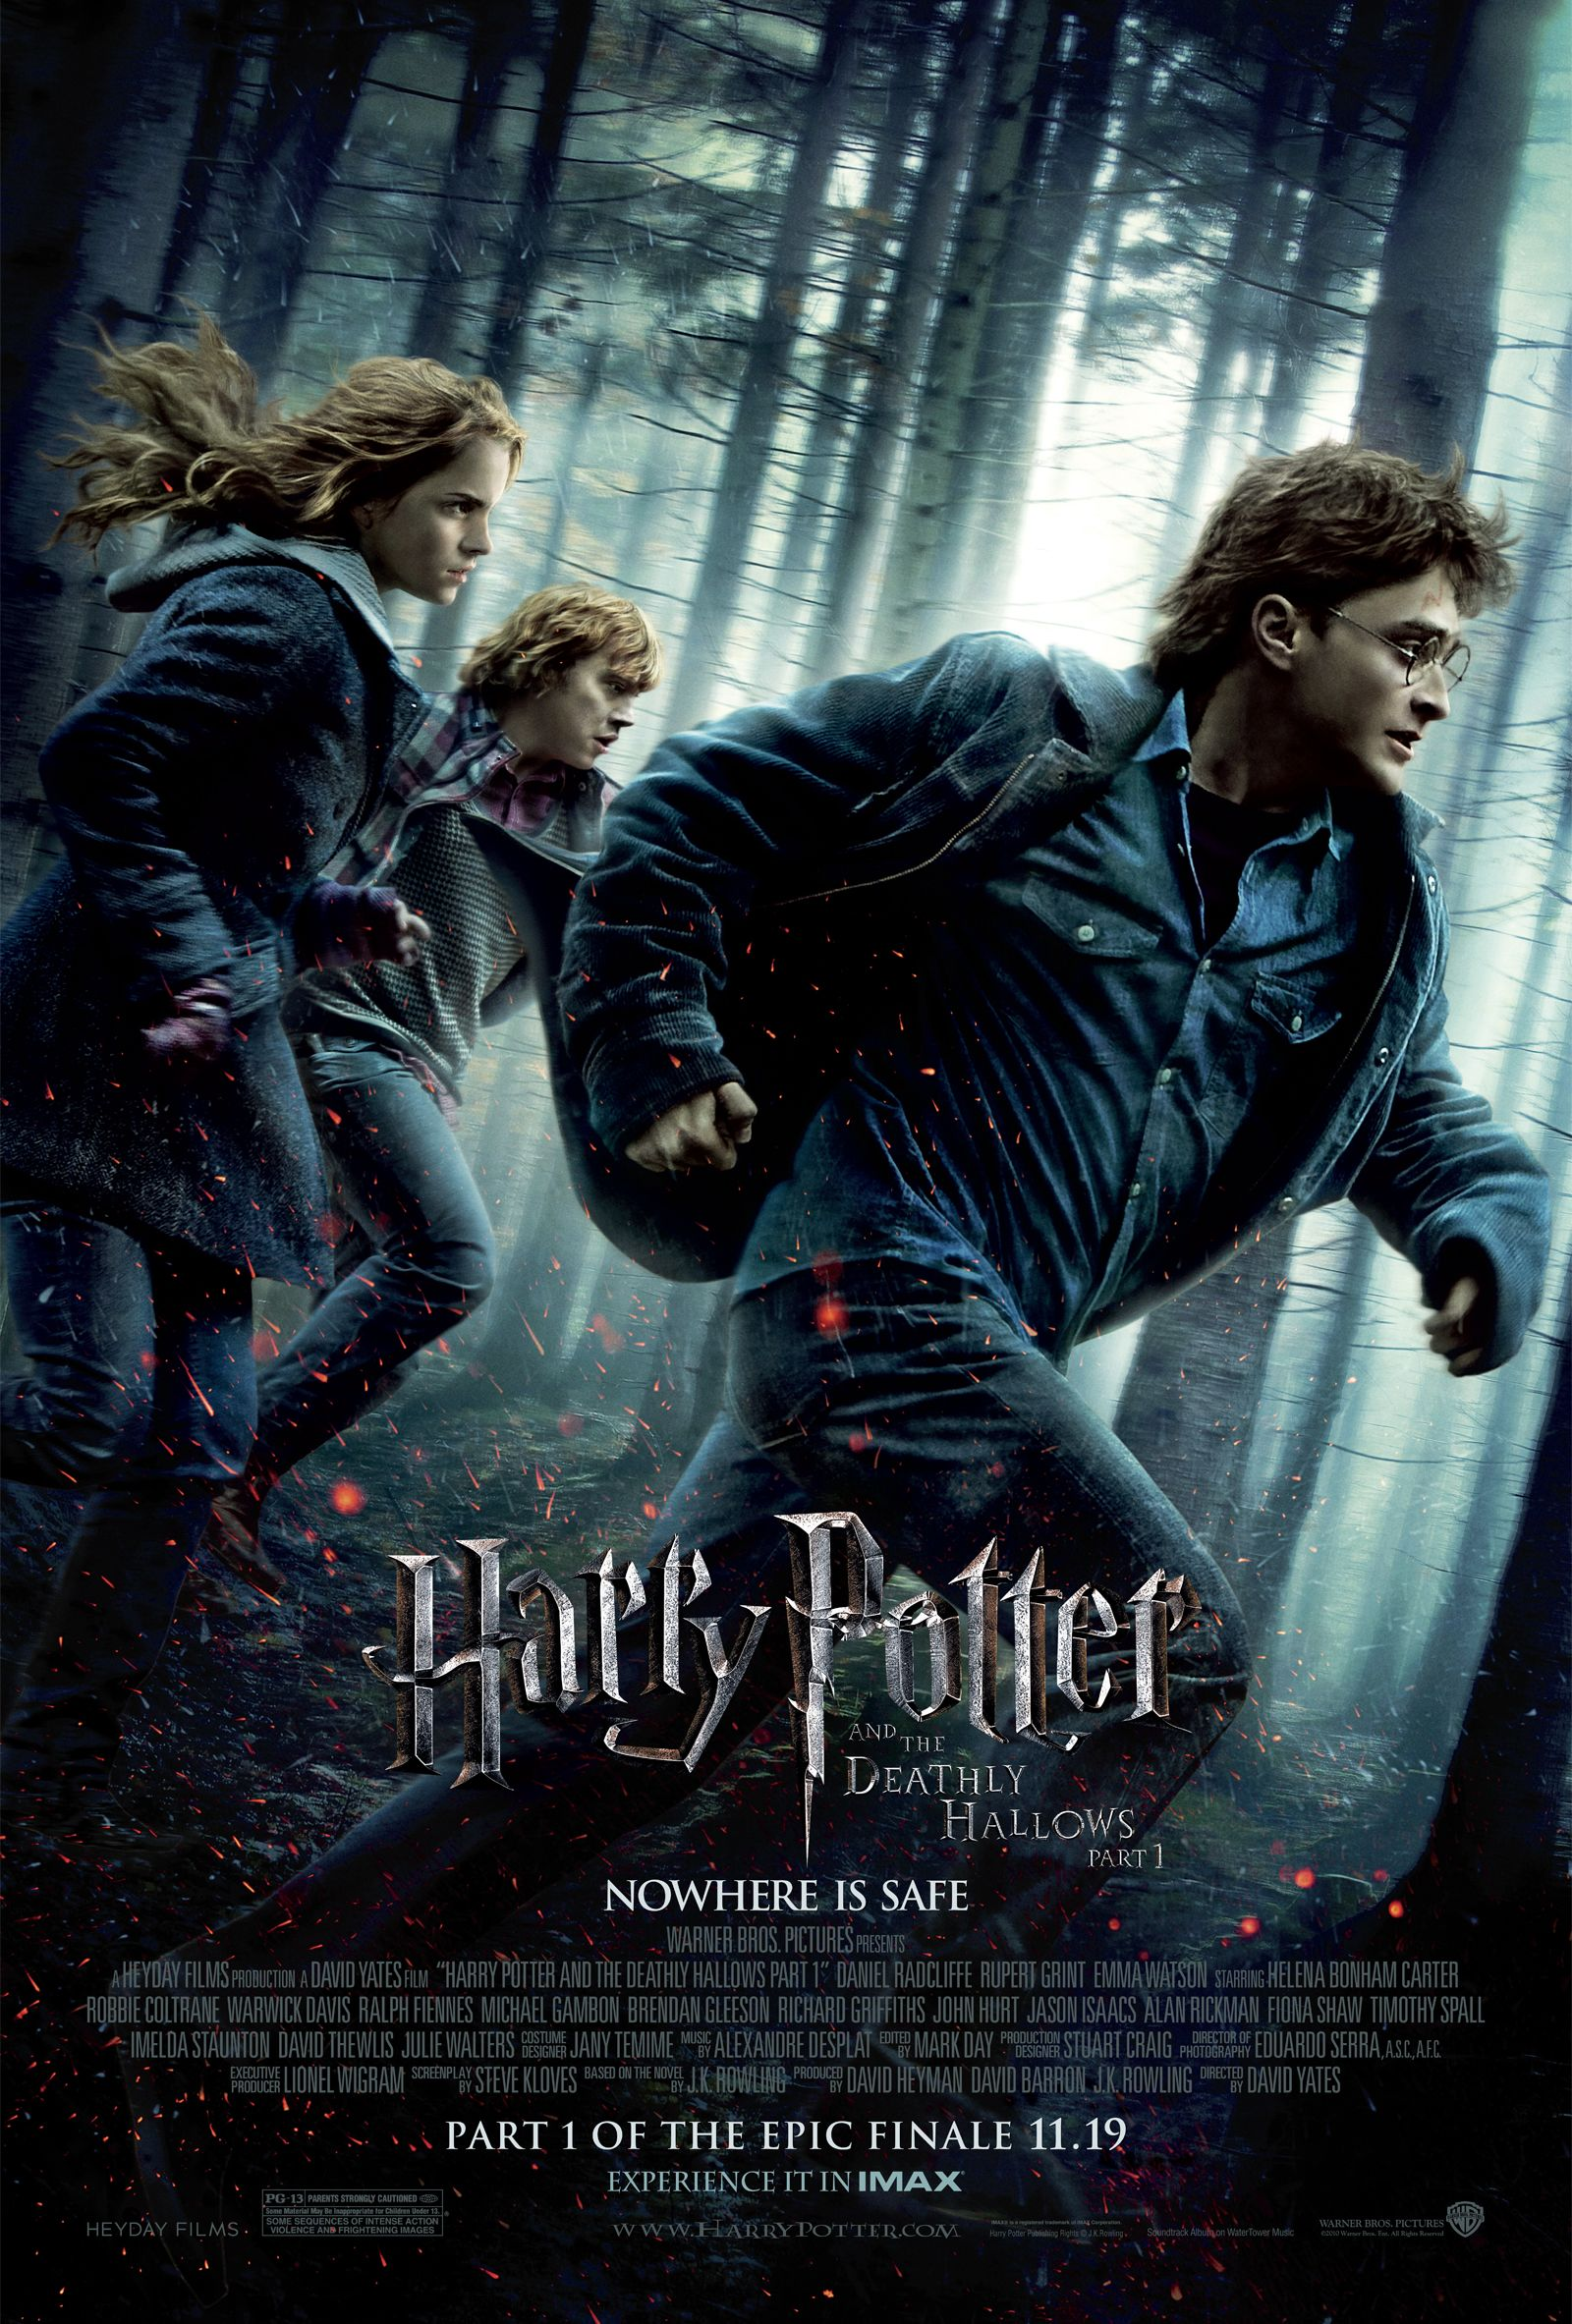 Harry Potter And The Deathly Hallows Part 2 2011 Phone Wallpaper Moviemania Deathly Hallows Part 2 Harry Potter Deathly Hallows Harry Potter Poster